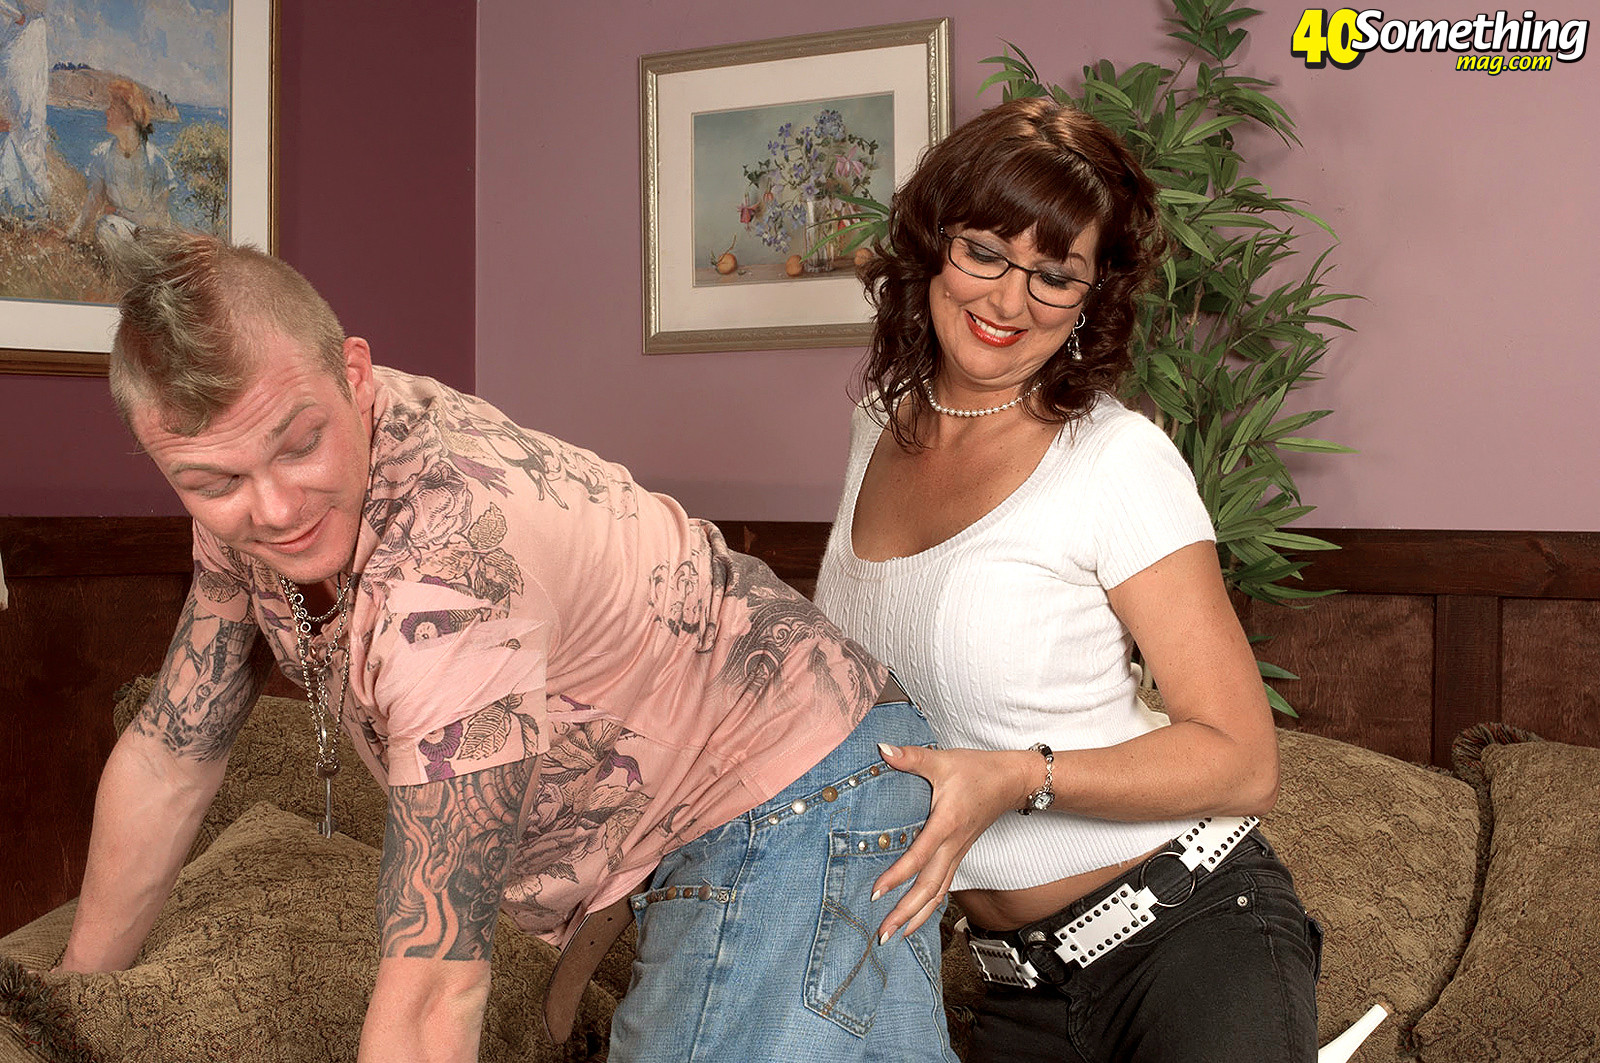 Lucky guy gets to fuck this horny busty milf in heat